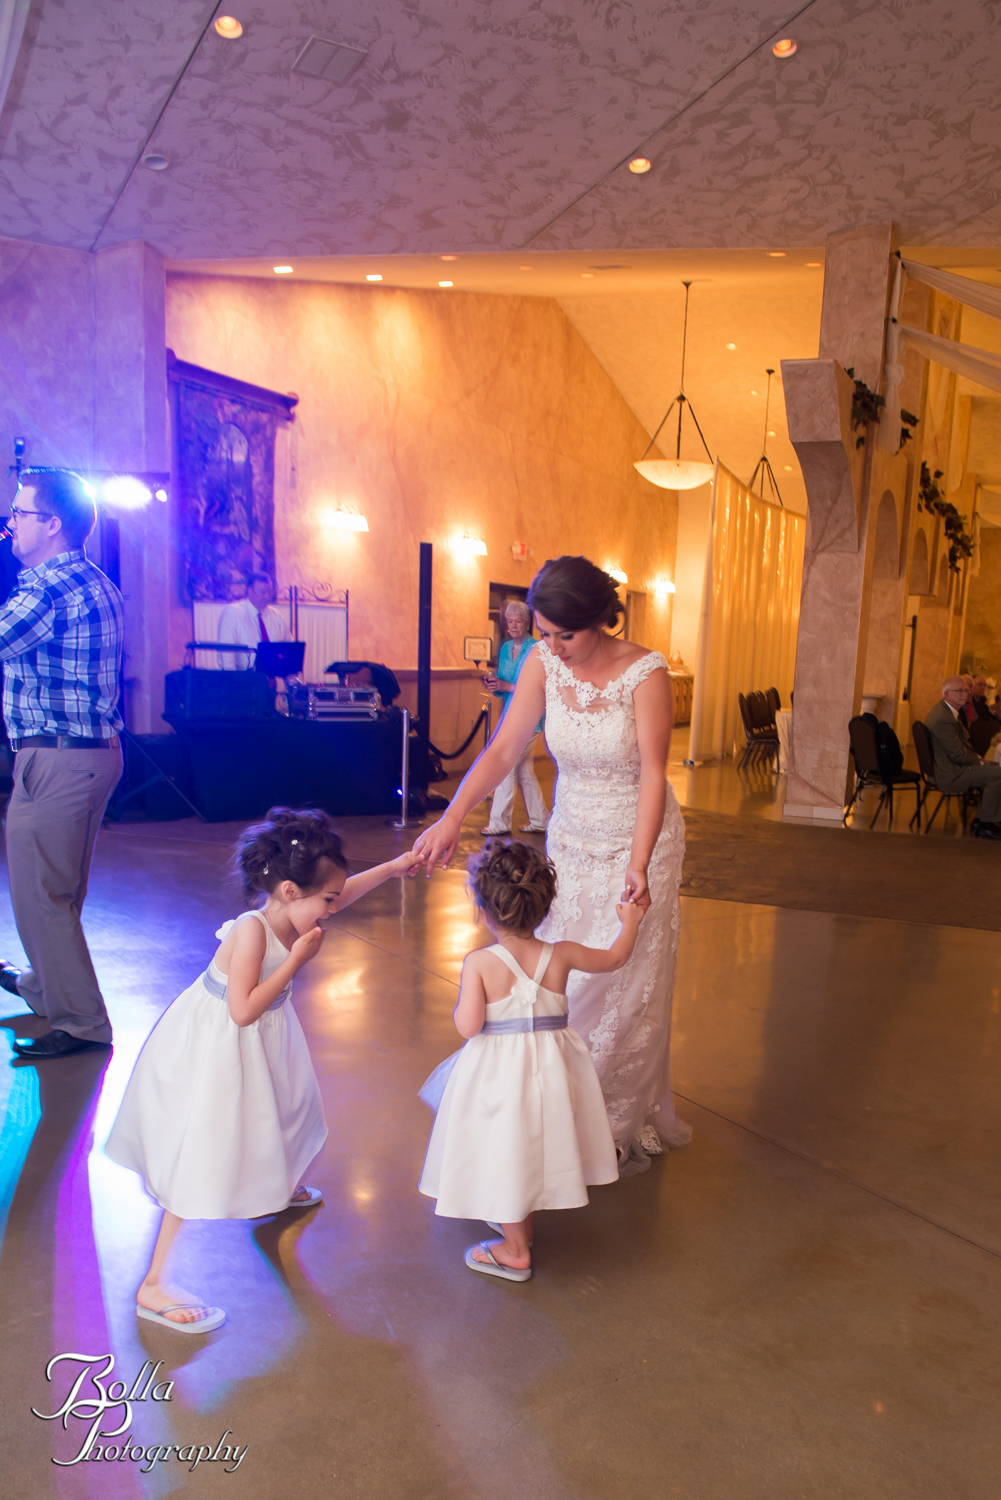 Bolla_Photography_St_Louis_wedding_photographer_Villa_Marie_Winery-0441.jpg